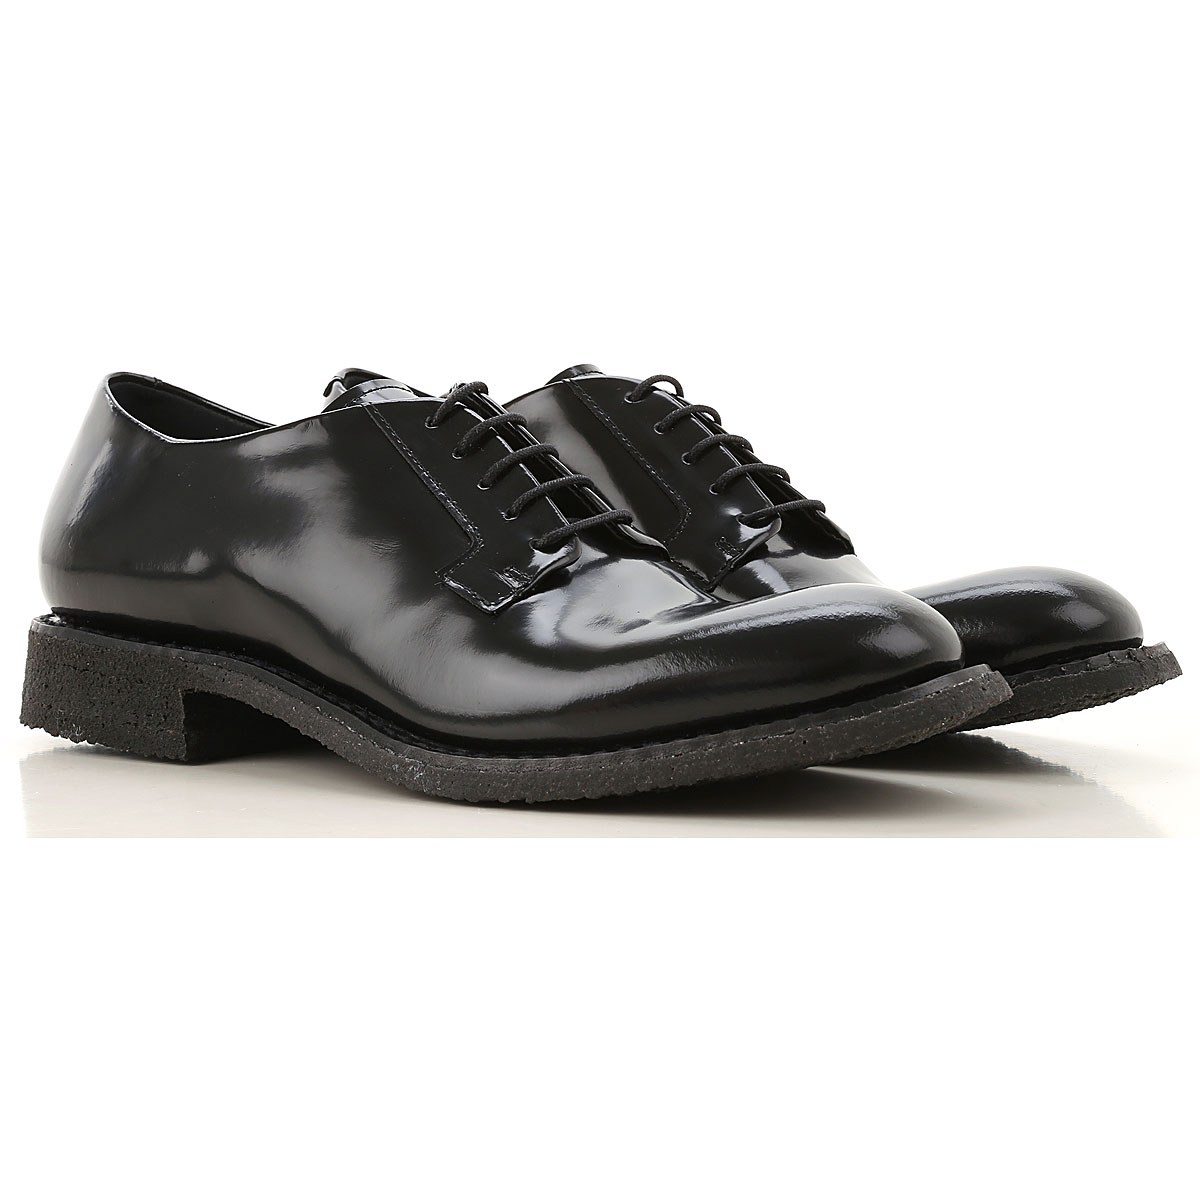 Roberto Del Carlo Lace Up Shoes for Men Oxfords, Derbies and Brogues On Sale, Black, Polished, 2019, 10 7 8 8.5 9